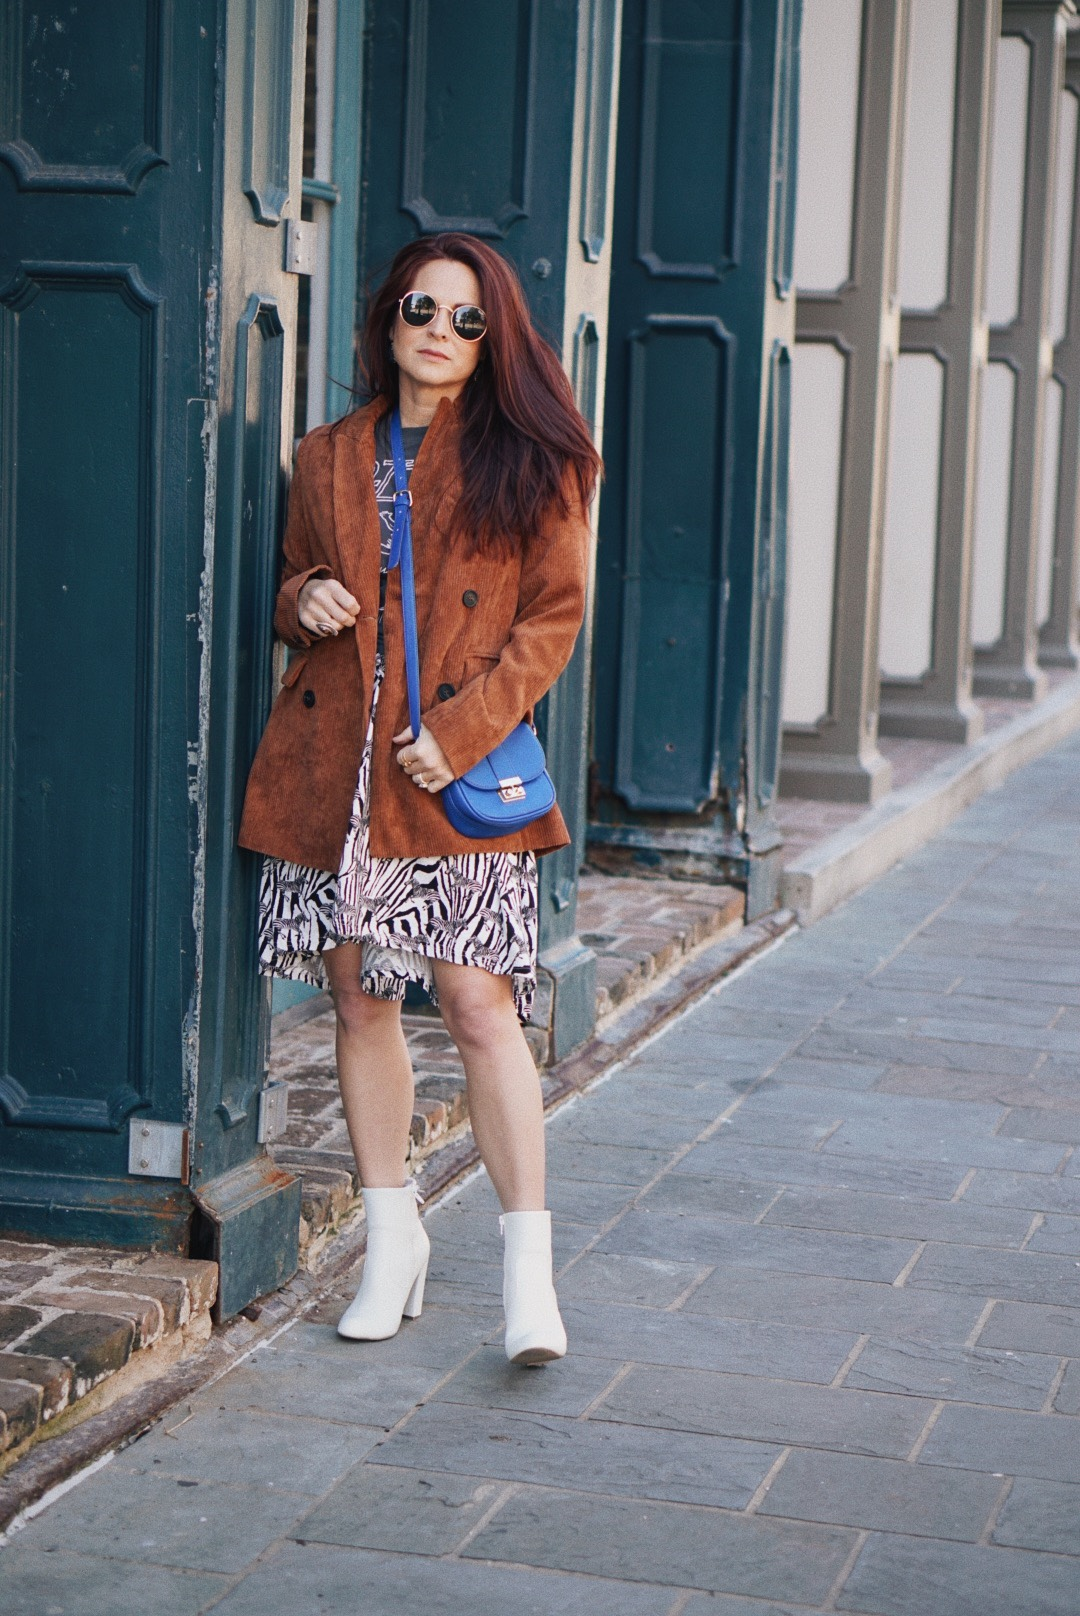 animal print skirt outfit inspiration, corduroy jackets, fall fashion ideas, cobalt blue crossbody outfits